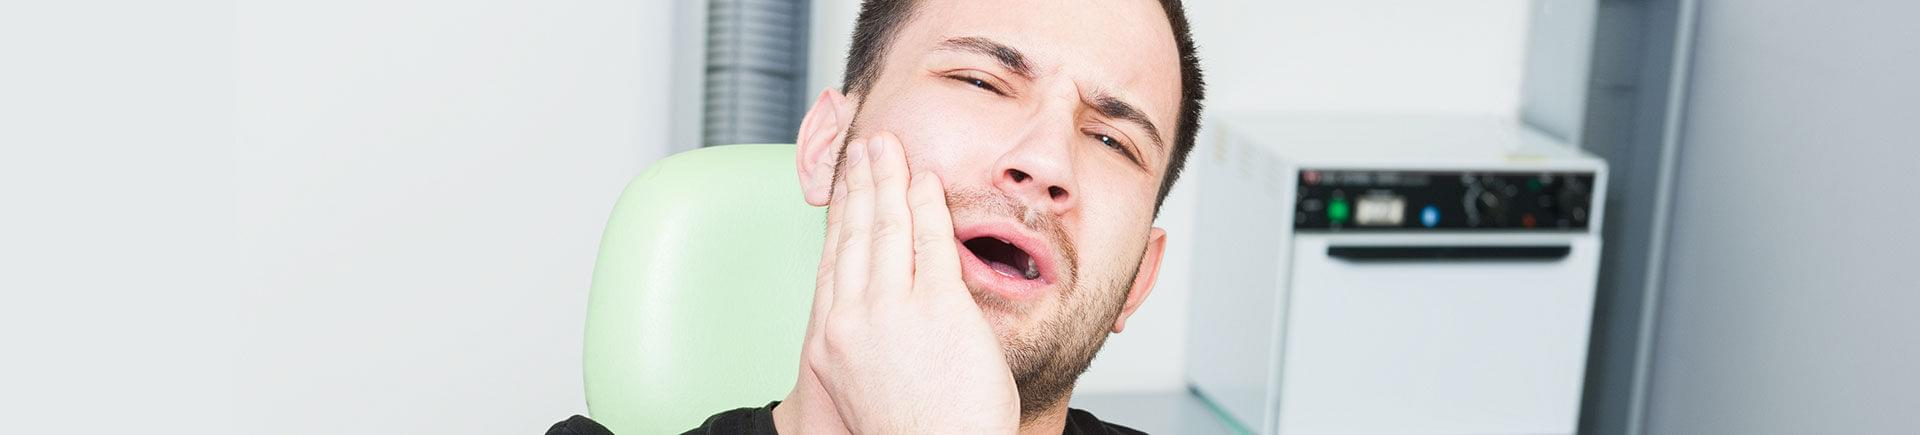 A man suffering from severe tooth pain.